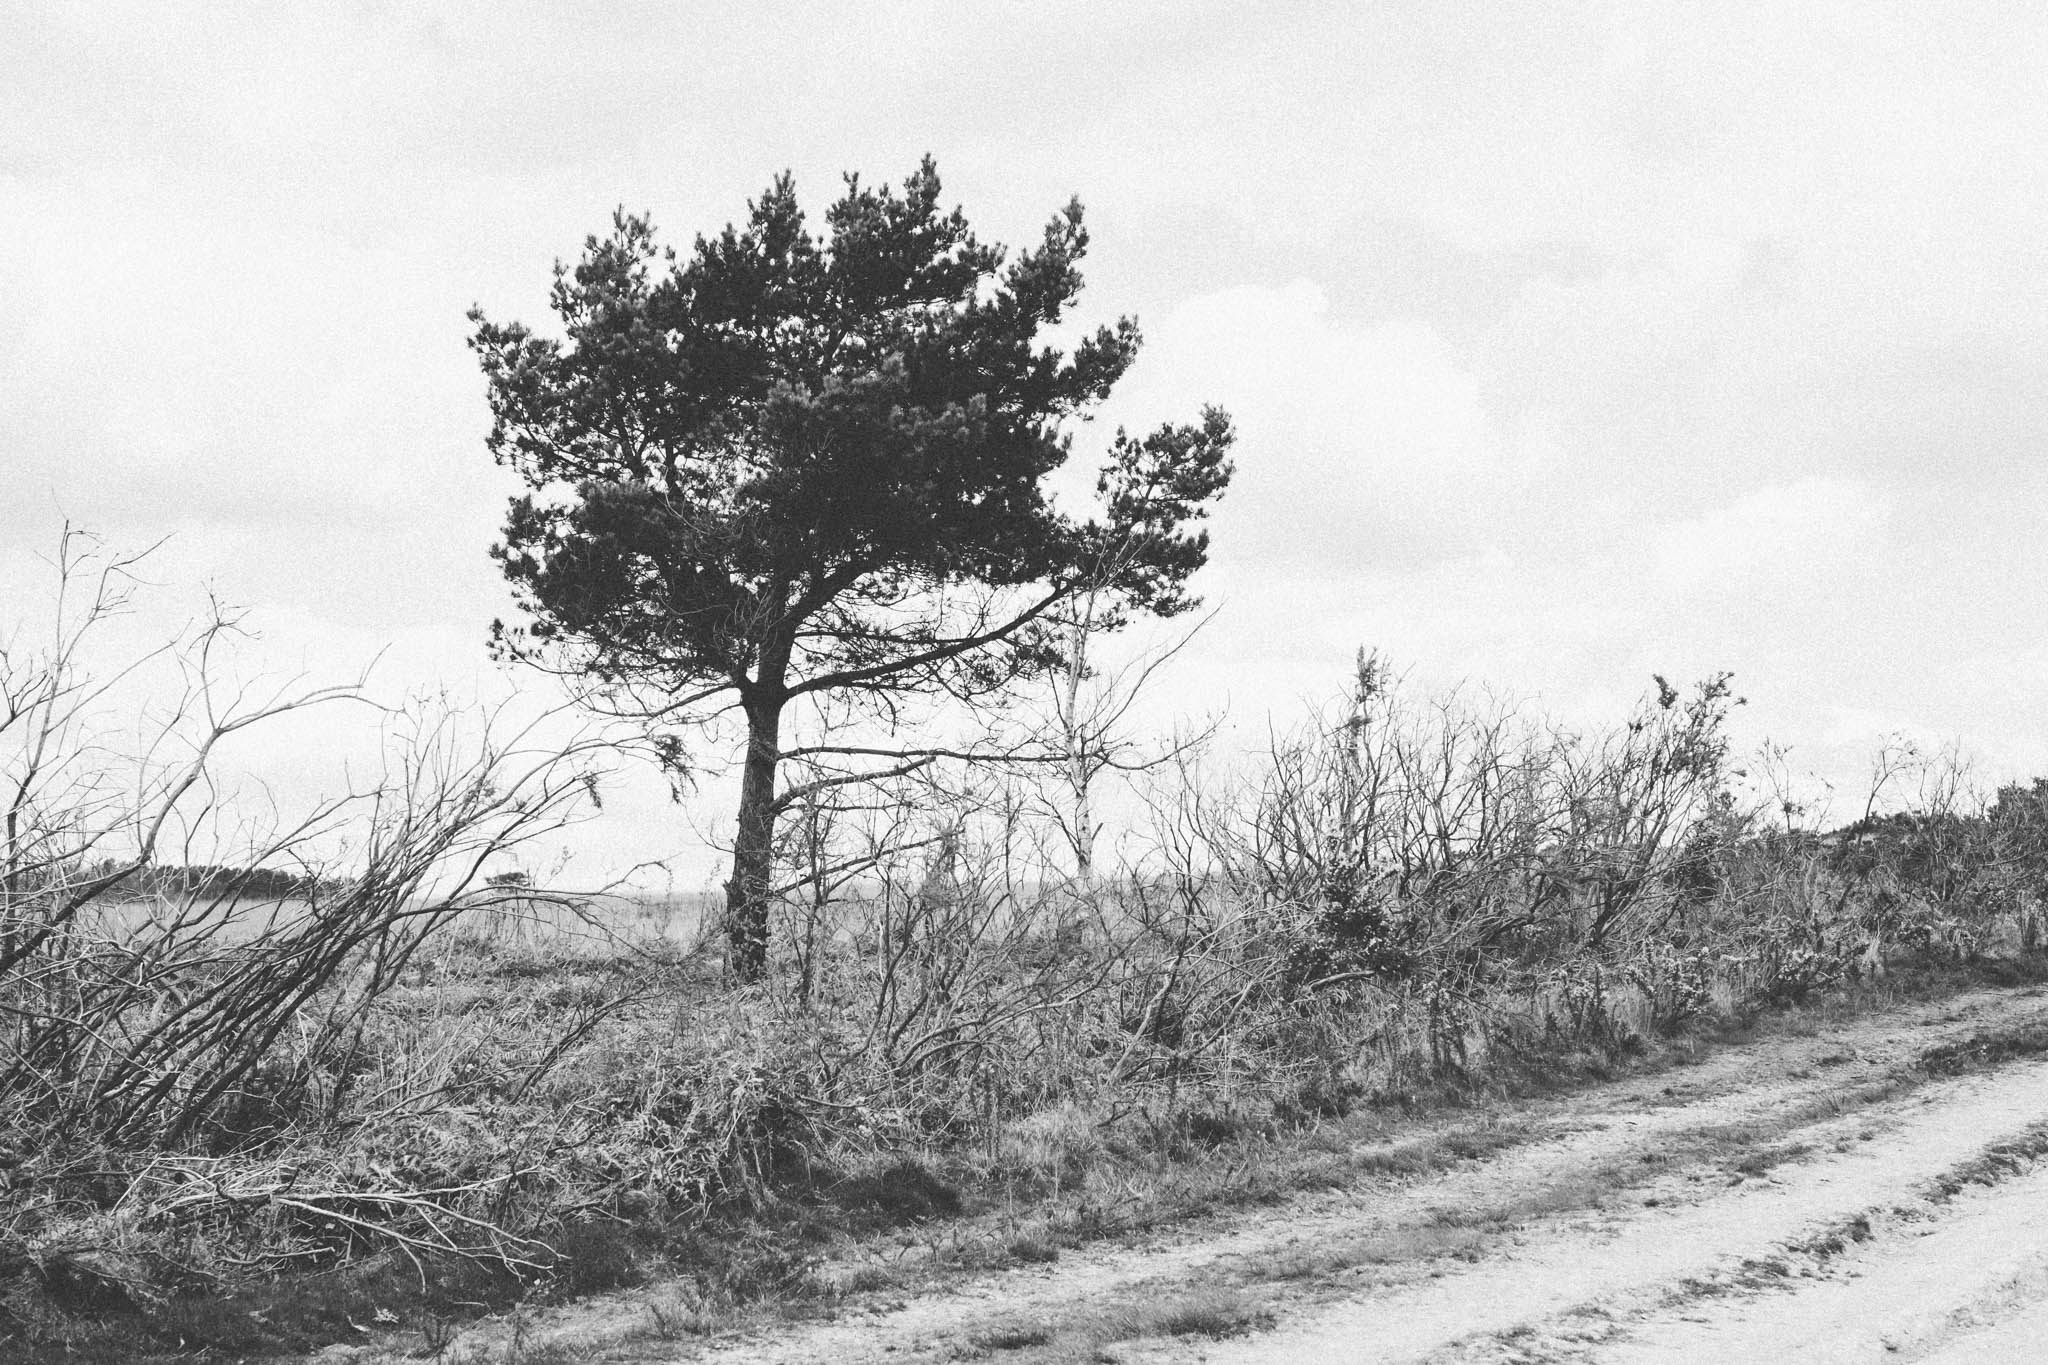 Sussex Walks - The Old Airstrip at Ashdown Forest. Photograhed by Emma Gutteridge for Retreat, a Sussex food and lifestyle blog. Photos taken on a Fuji XT1